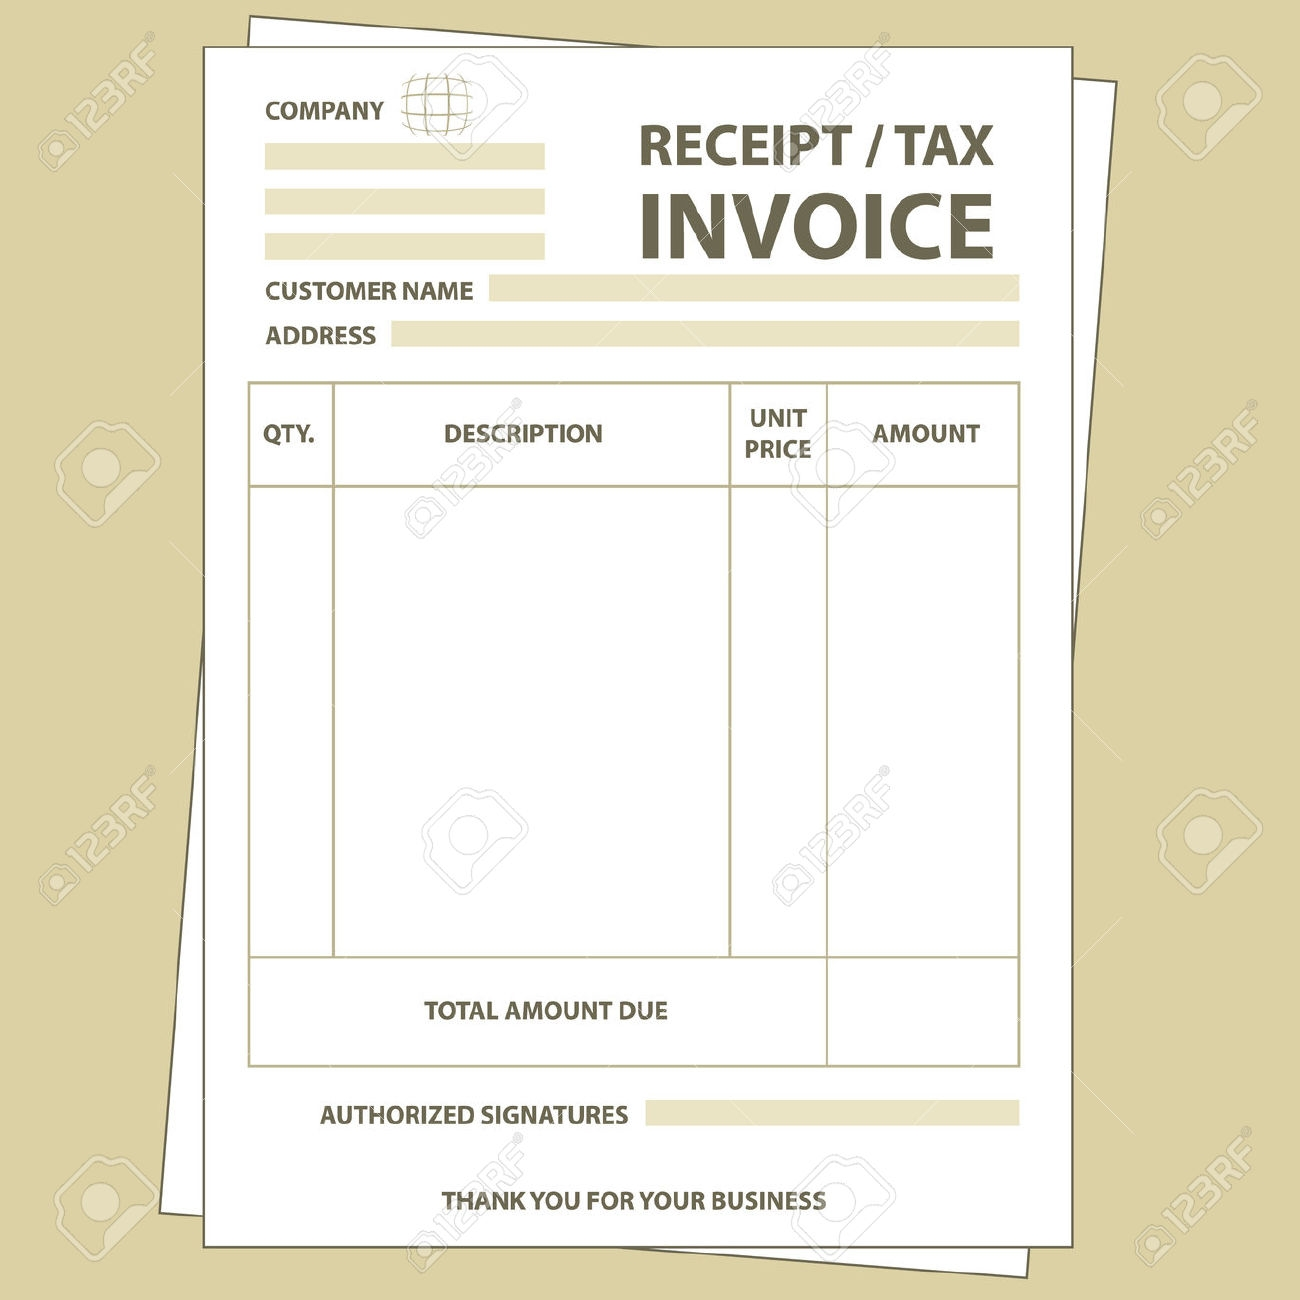 illustration of unfill paper tax invoice form royalty free tax invoice receipt template